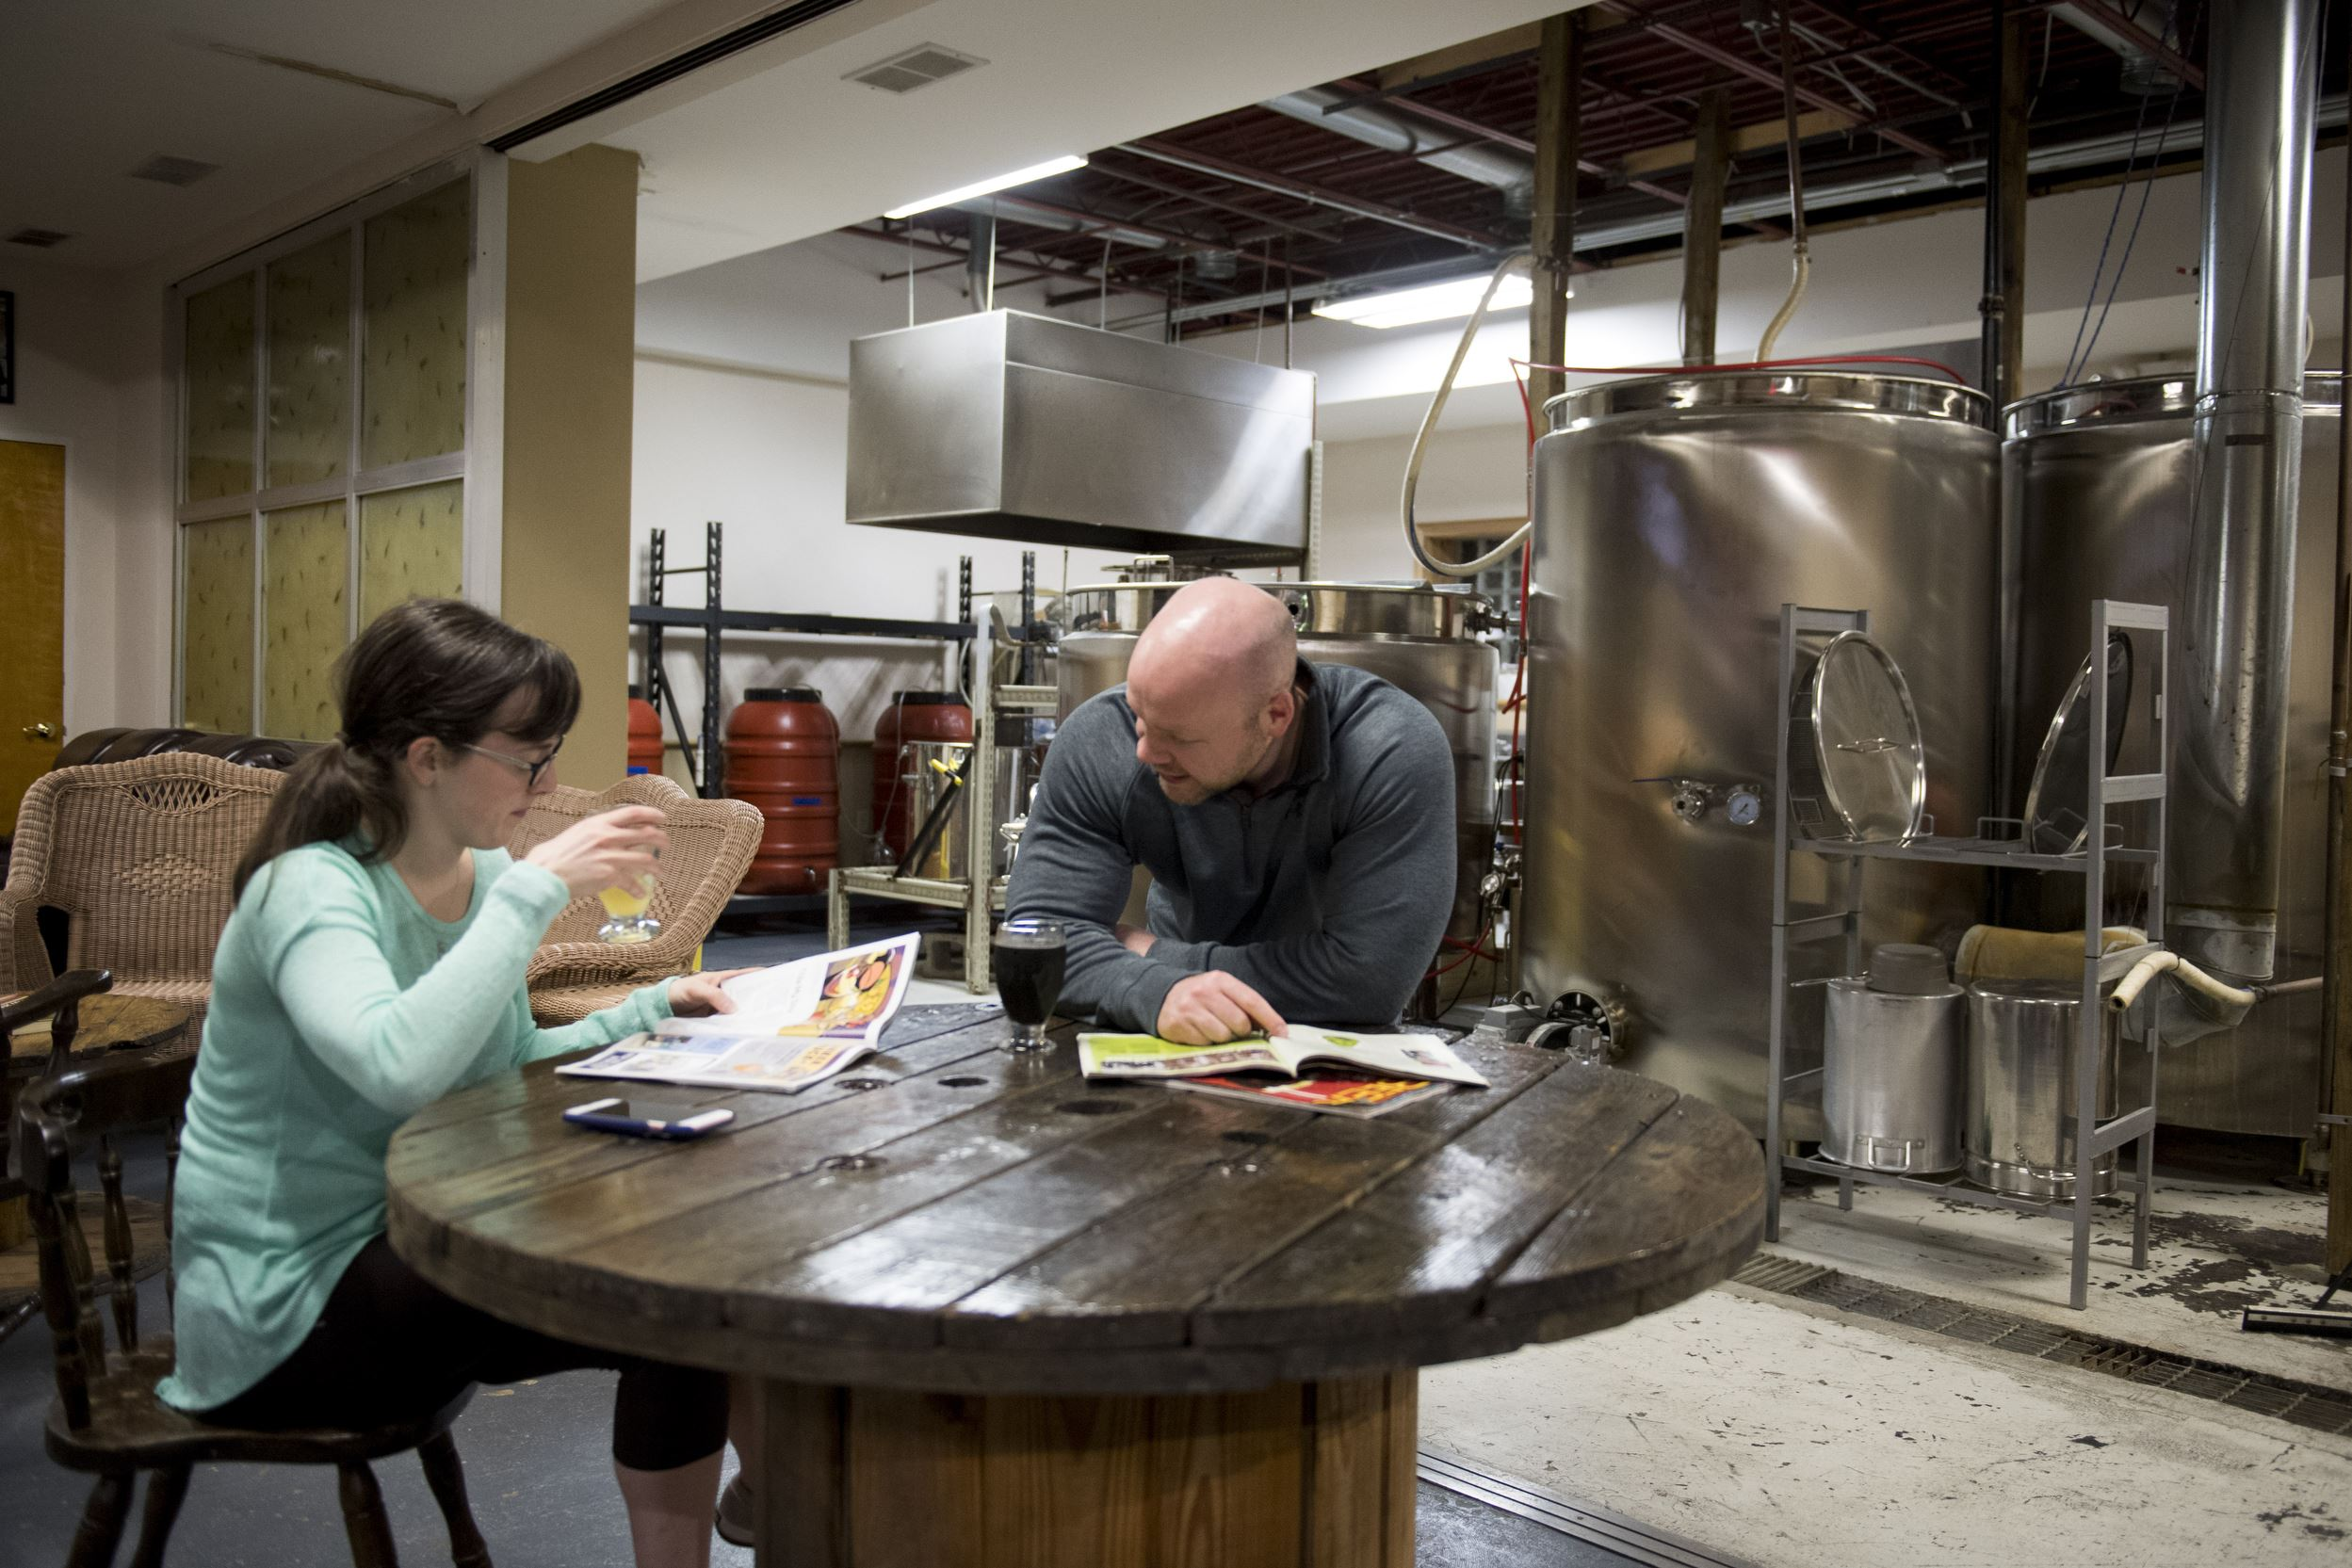 20170505scPetrucci-04-9 Andy Forrest of Center Township and Katy Hiser of Ellwood City read magazines while enjoying beer on Friday, May 5, 2017 at Petrucci Brothers Brewing in New Brighton.